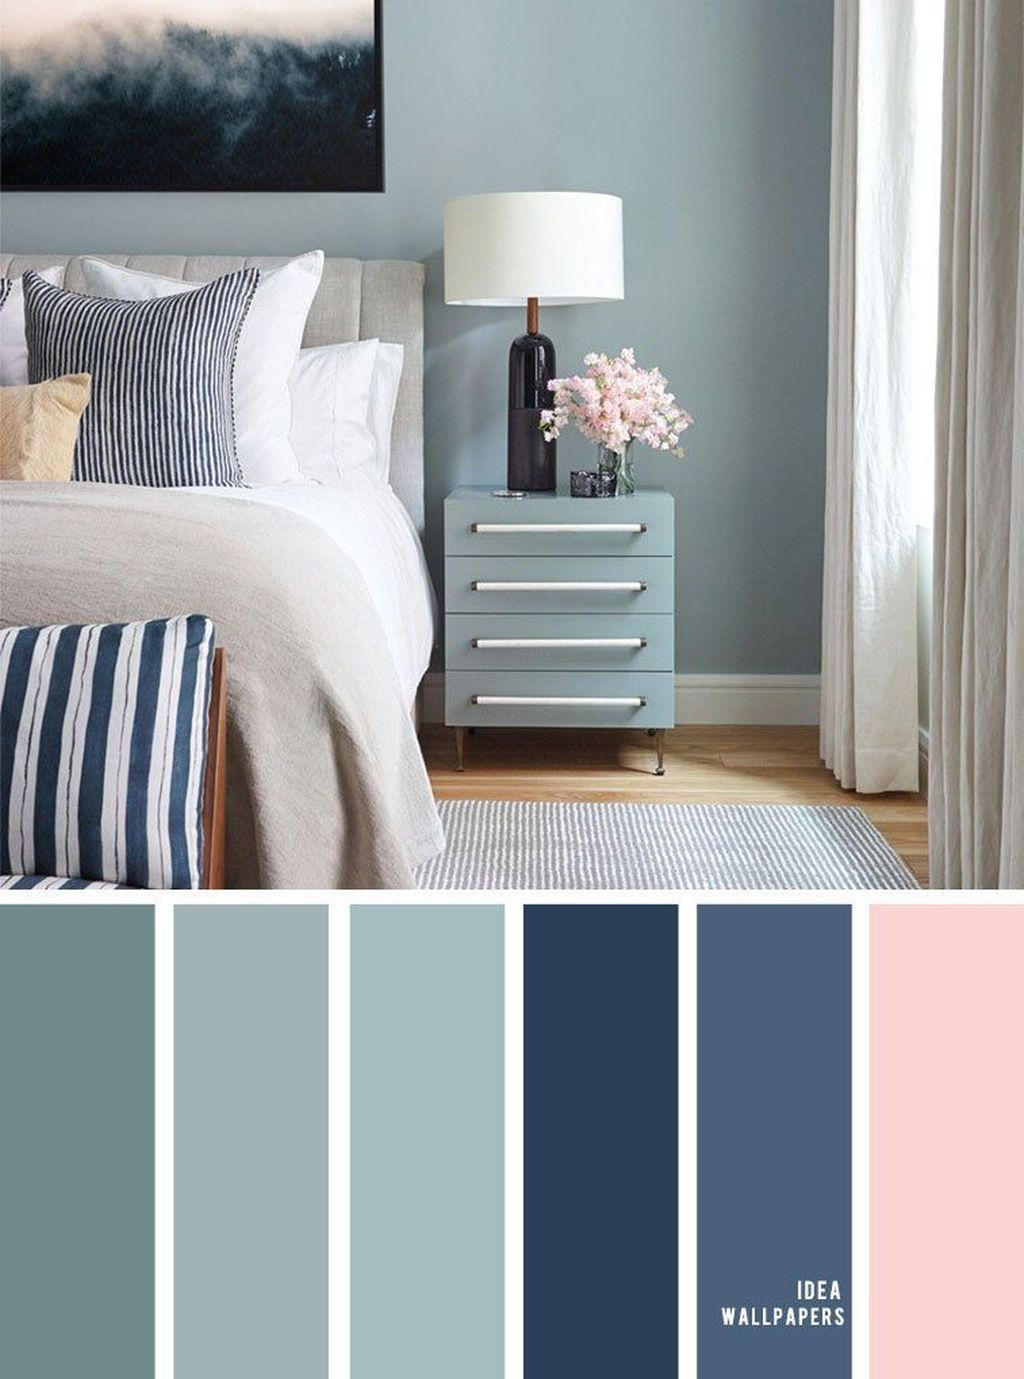 Pin By Phyllis Lei On Our Home In 2020 Master Bedroom Colors